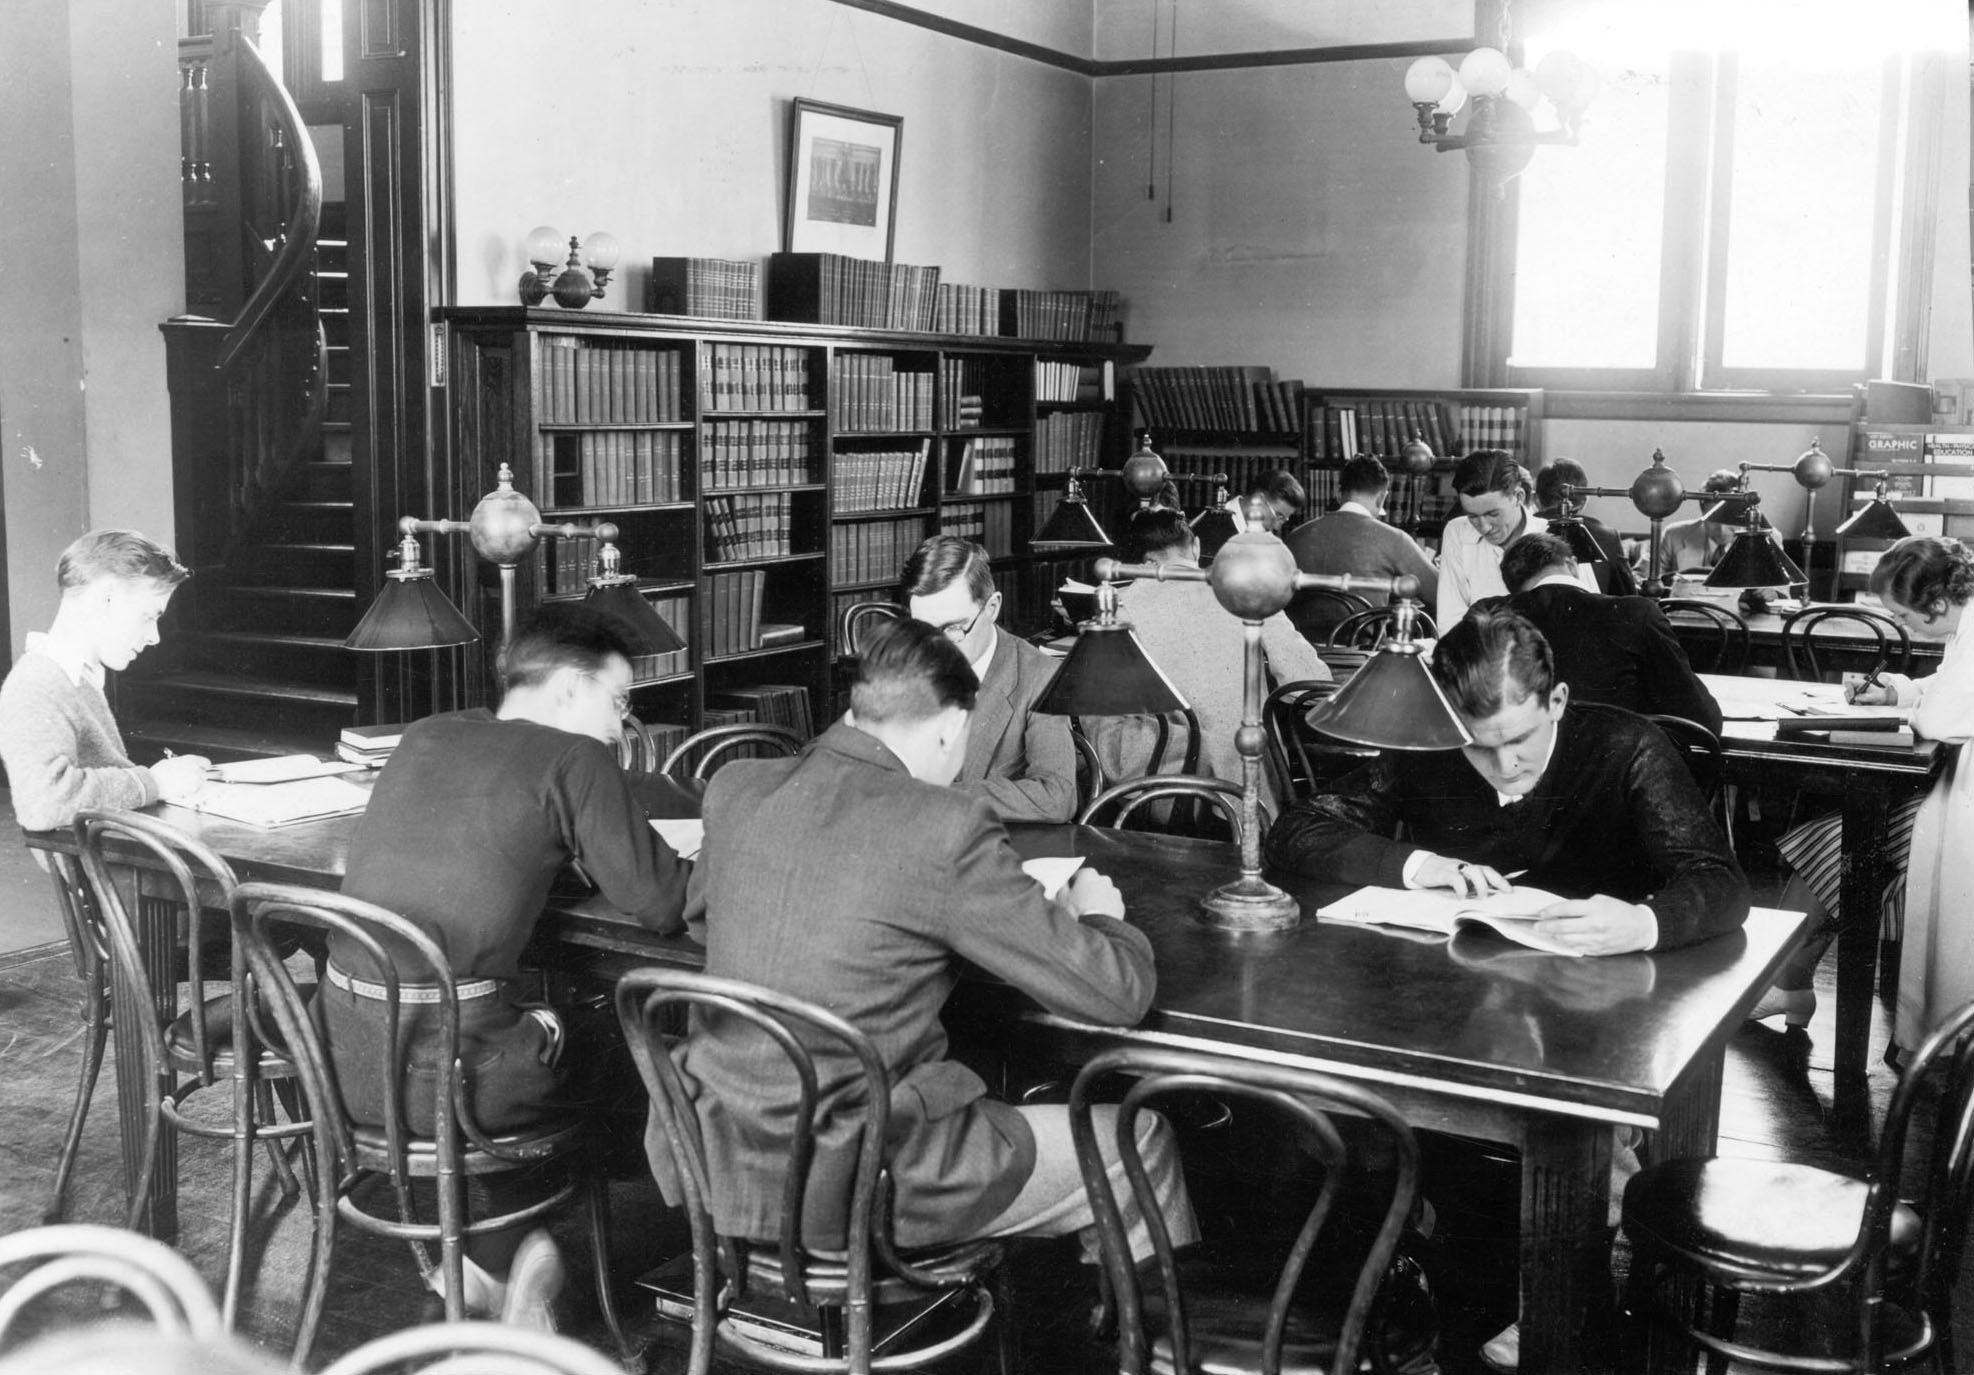 A study scene in Coram Library, circa 1930. Debuting in 1929-30, the first Bates alumni fund raised gifts for the library, student activities and career development.